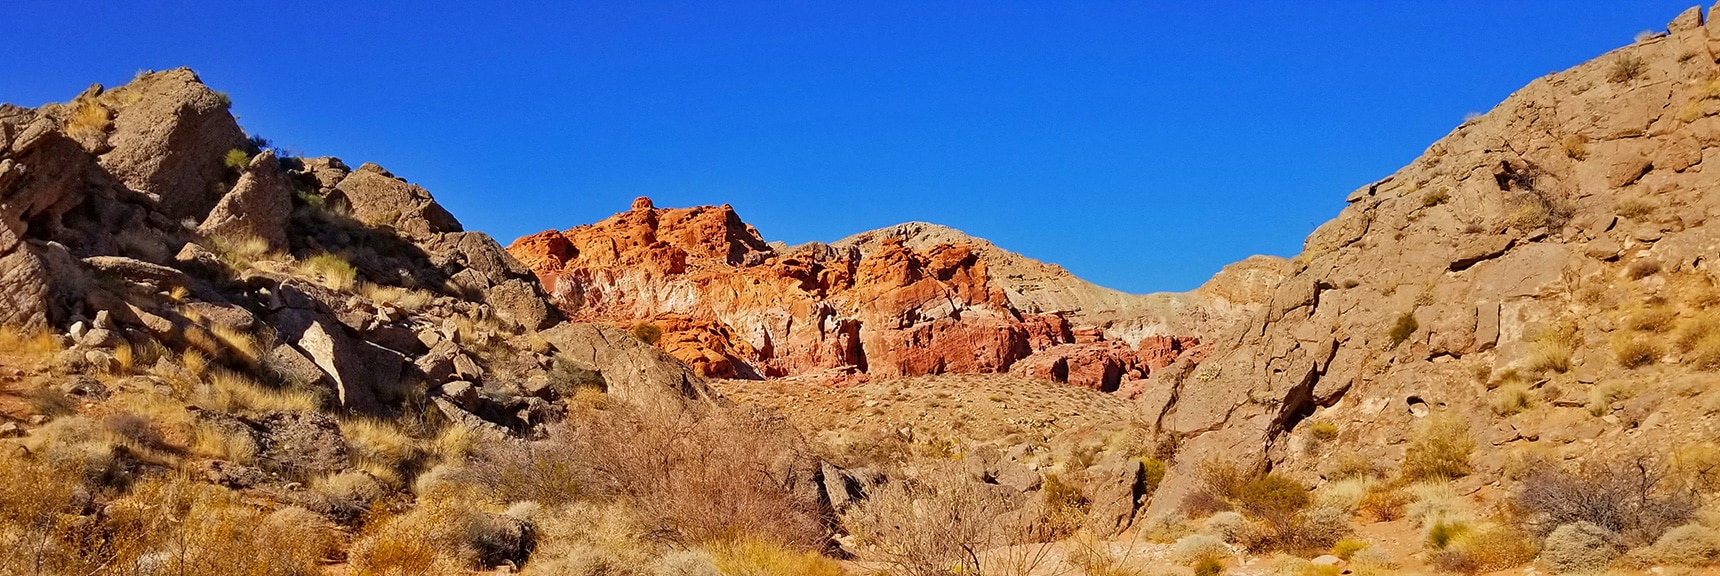 Approaching Bowl of Fire | Bowl of Fire, Lake Mead National Recreation Area, Nevada